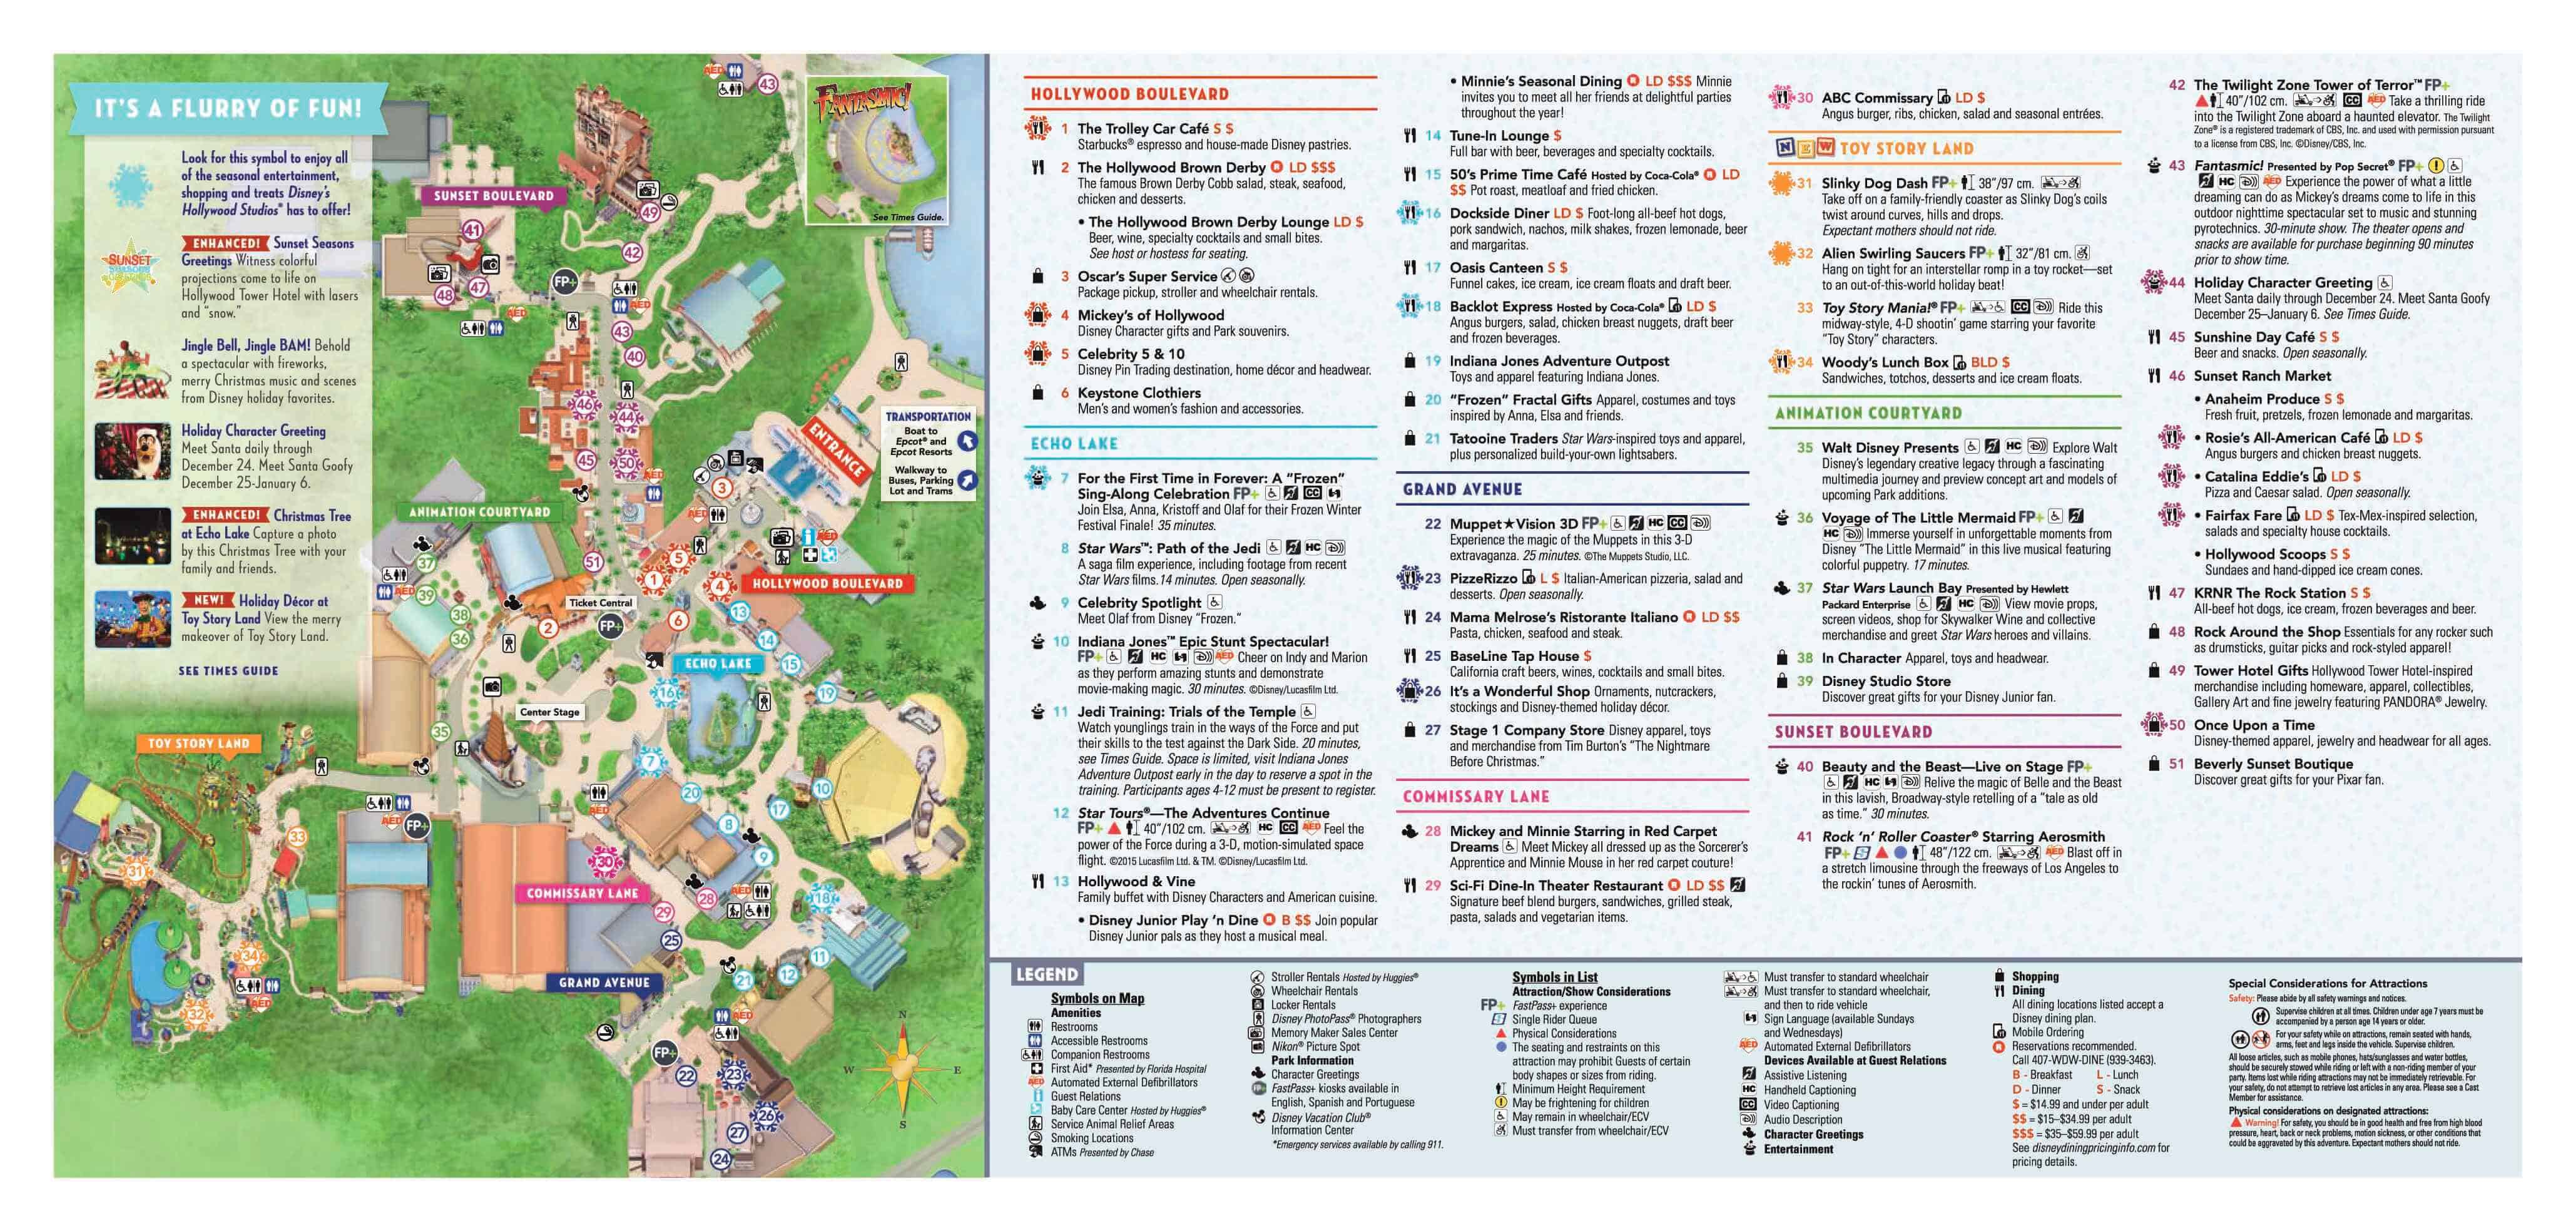 Disney's Hollywood Studios : The Ultimate Guide 1